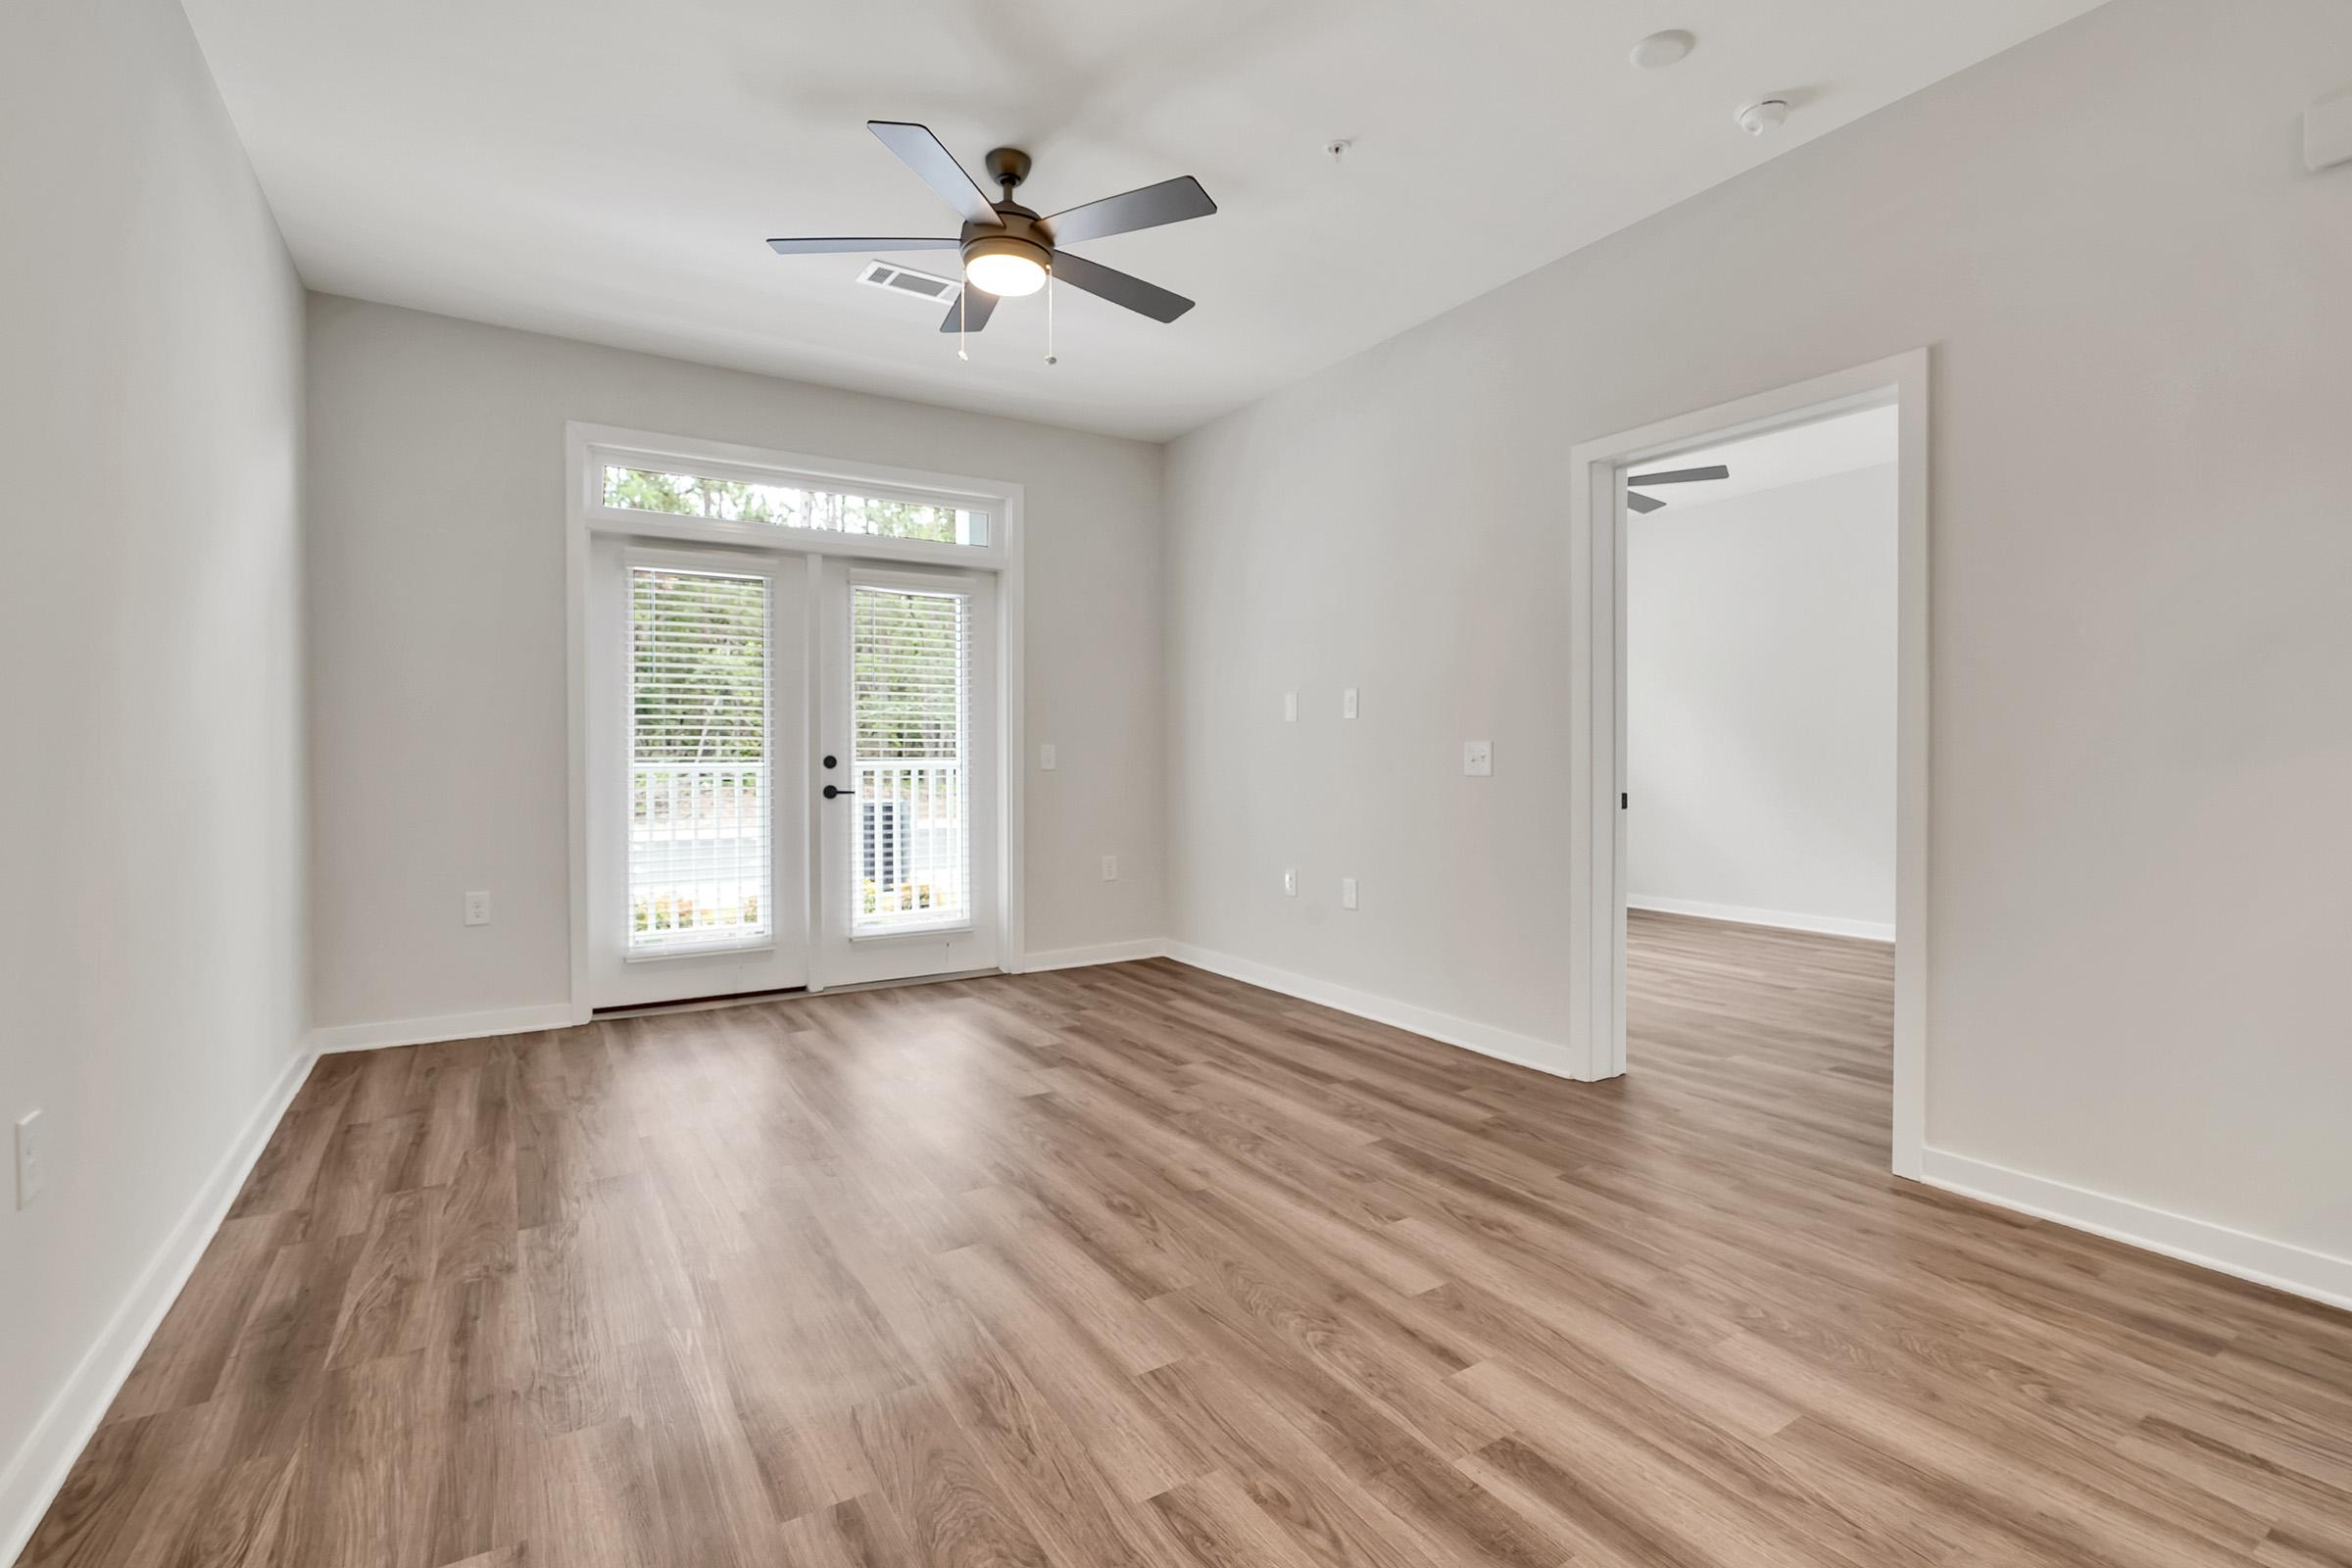 a view of a hard wood floor